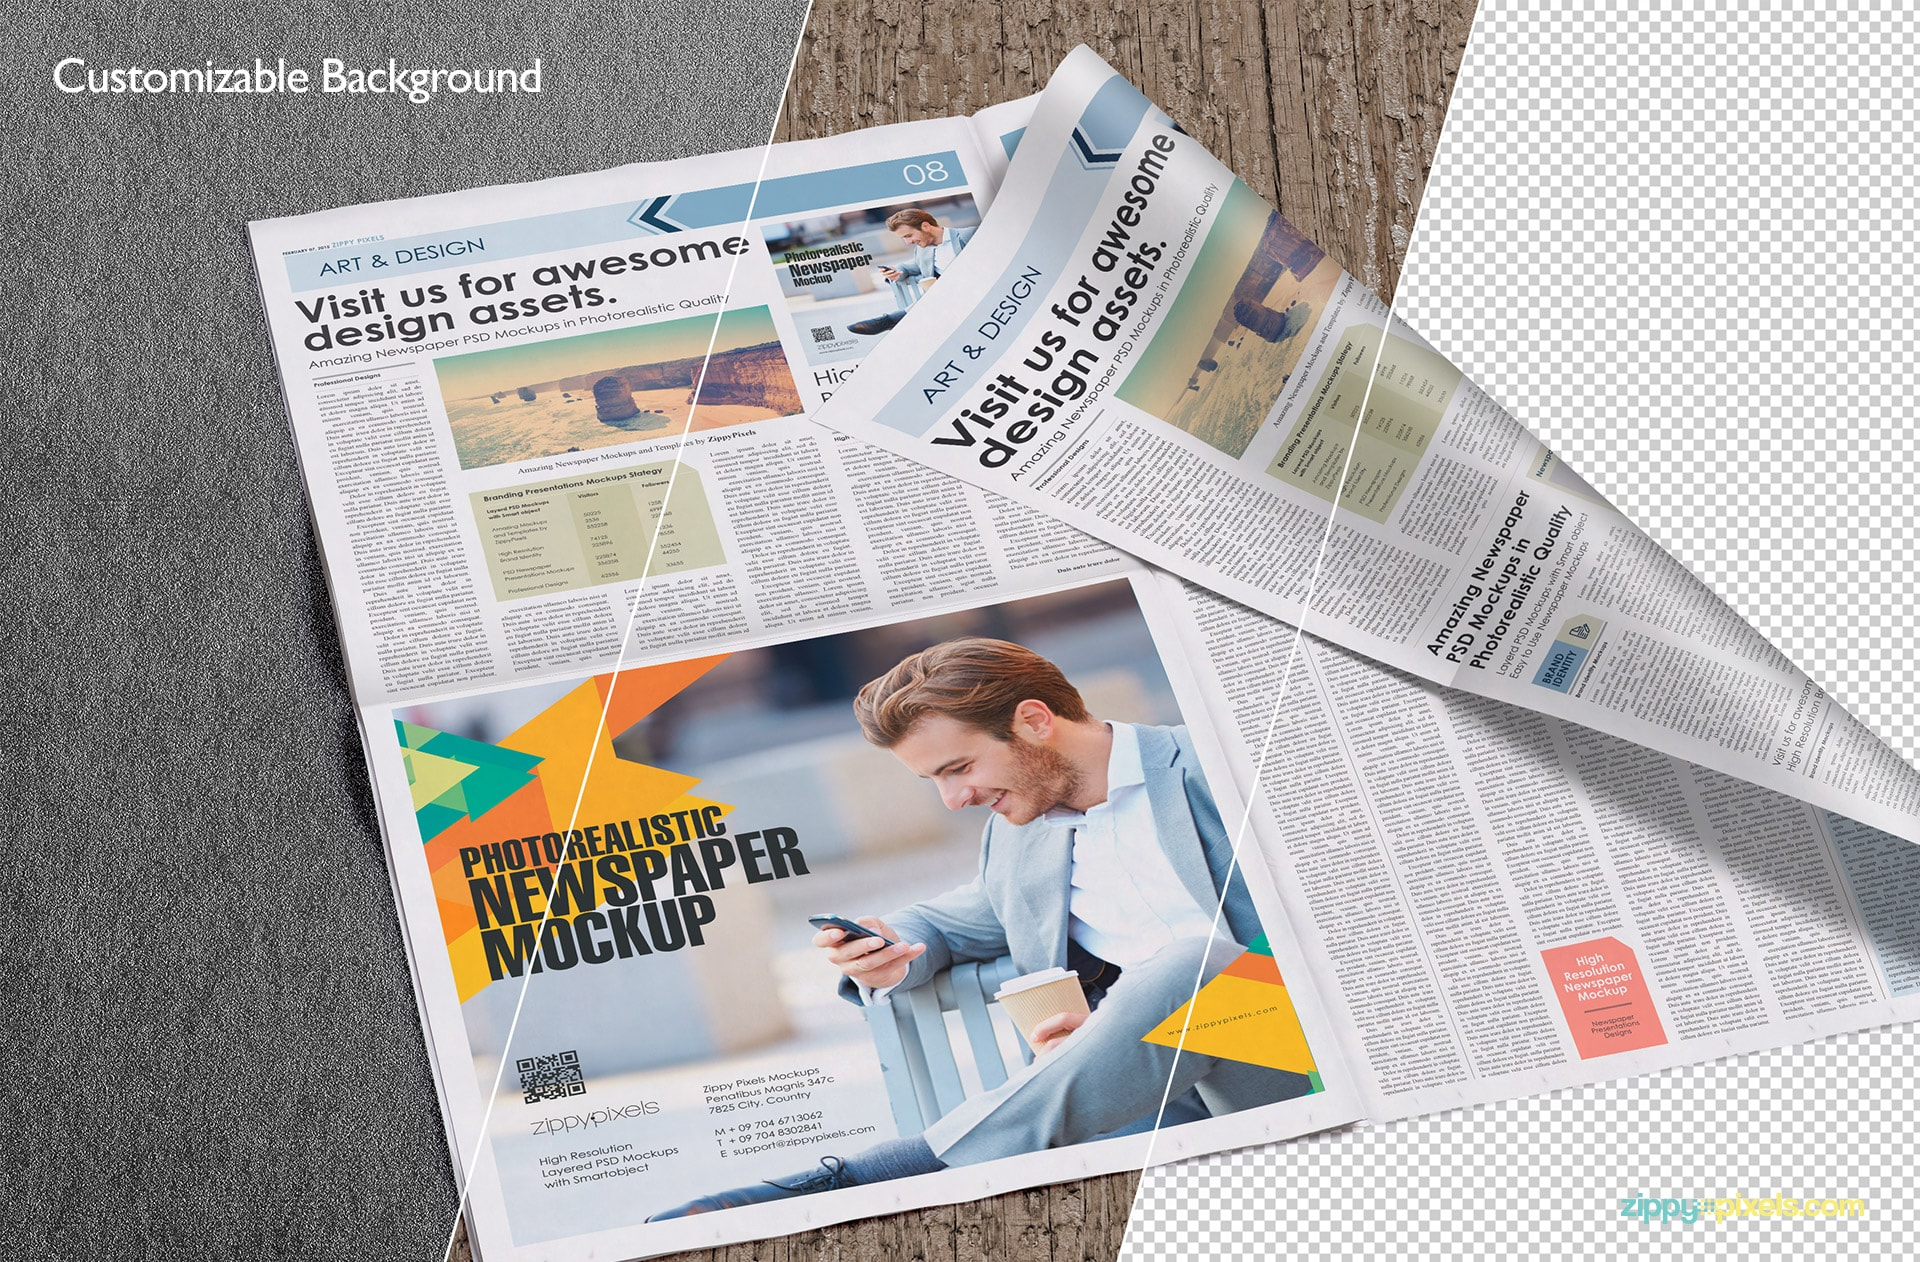 Broadsheet Newspaper Mockups for Advertising & Newspaper Designs with Customizable Background